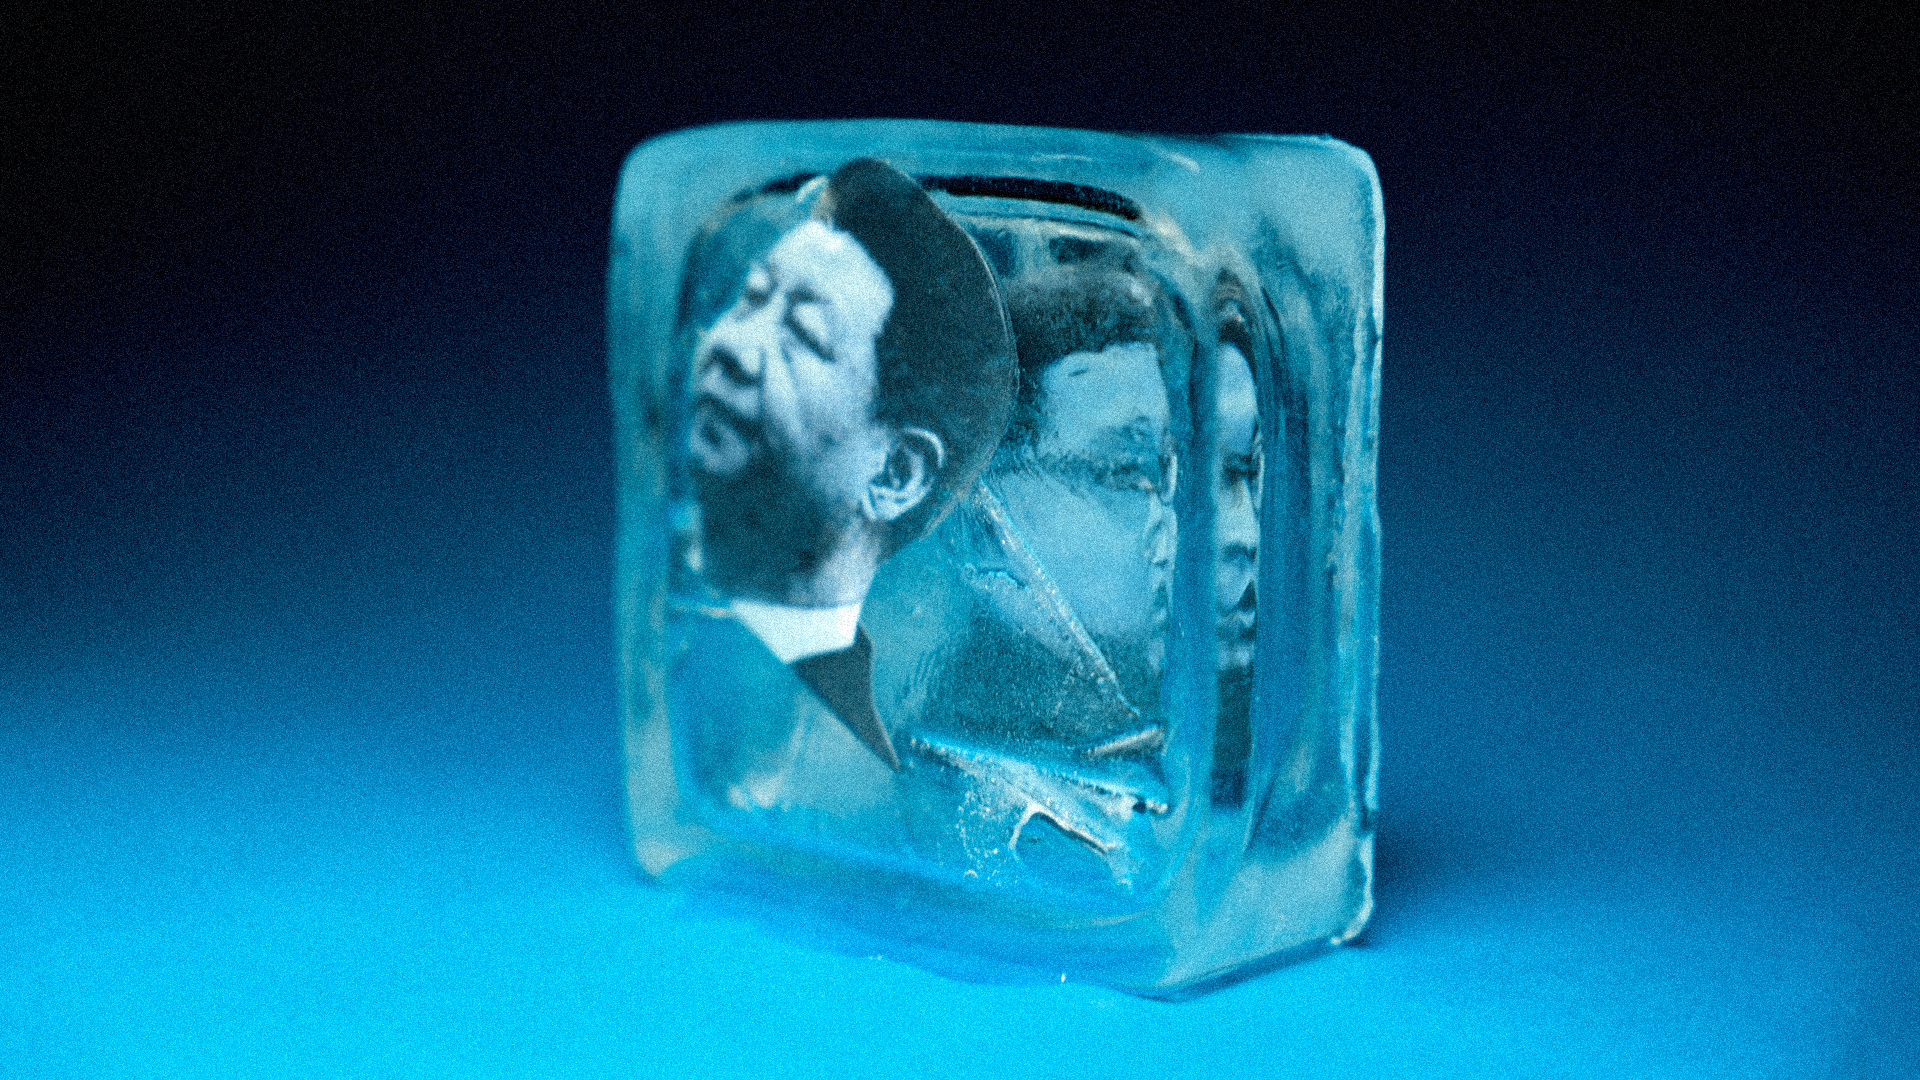 Xi and Kim in a block of ice